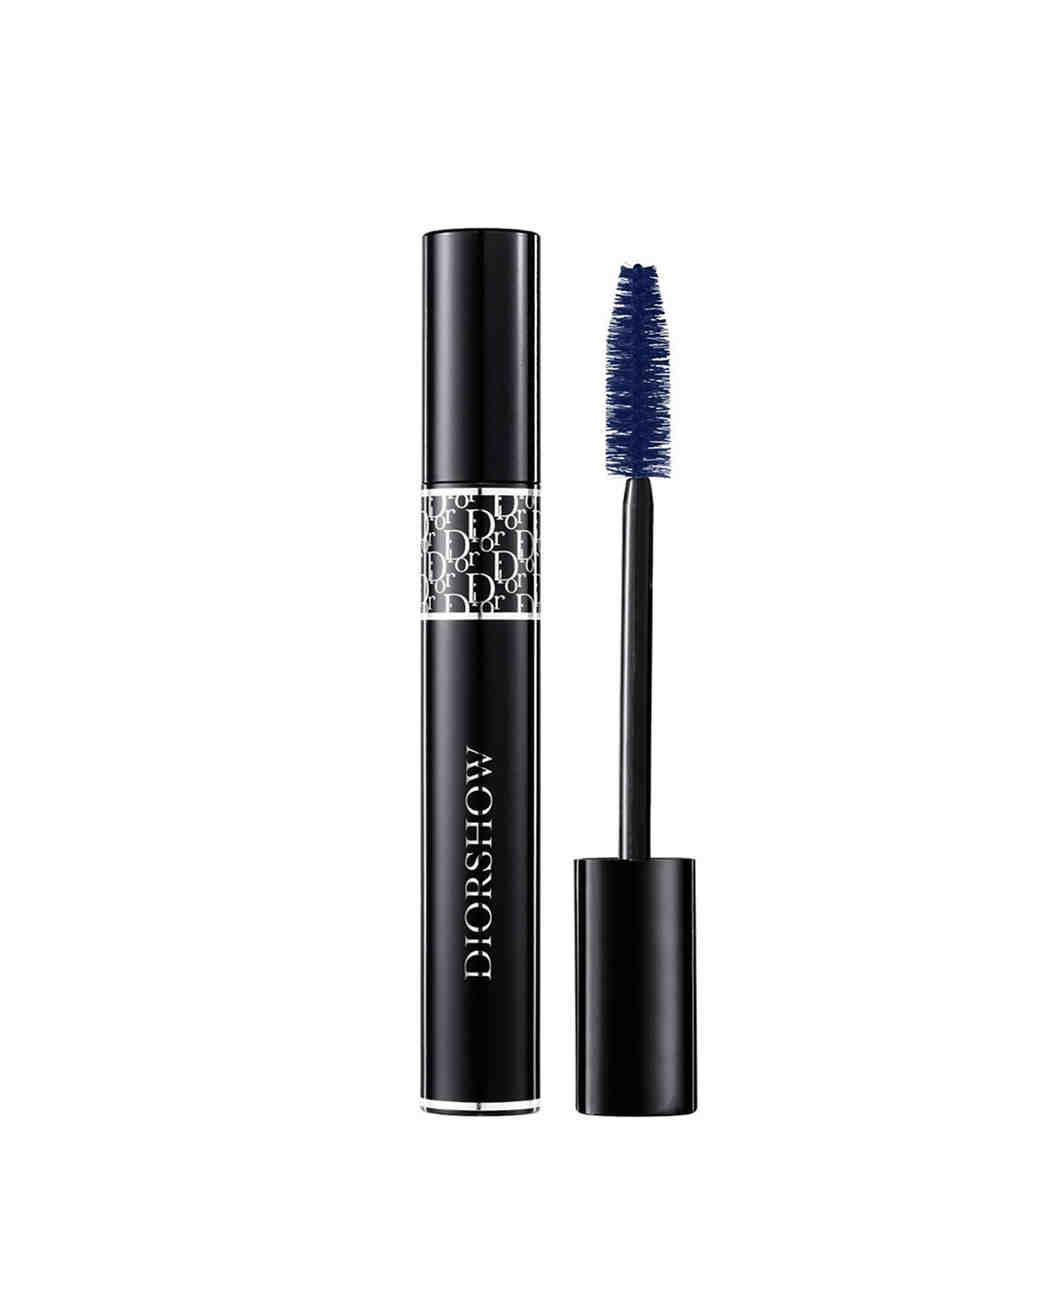 Dior Diorshow Mascara in Blue